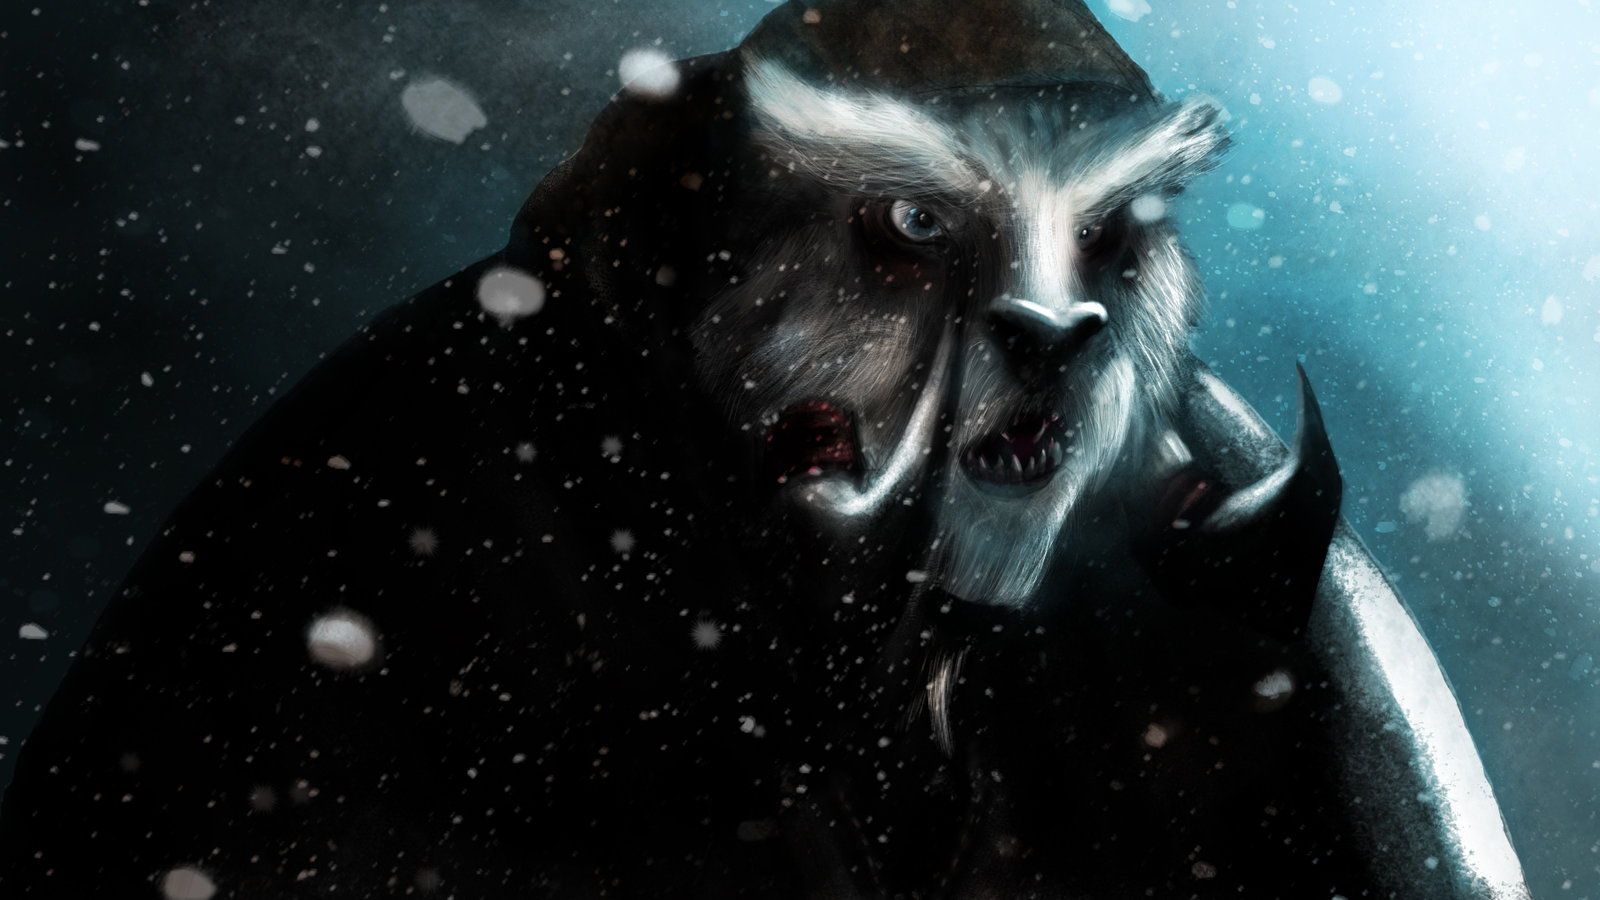 Tusk pc wallpaper Dota 2